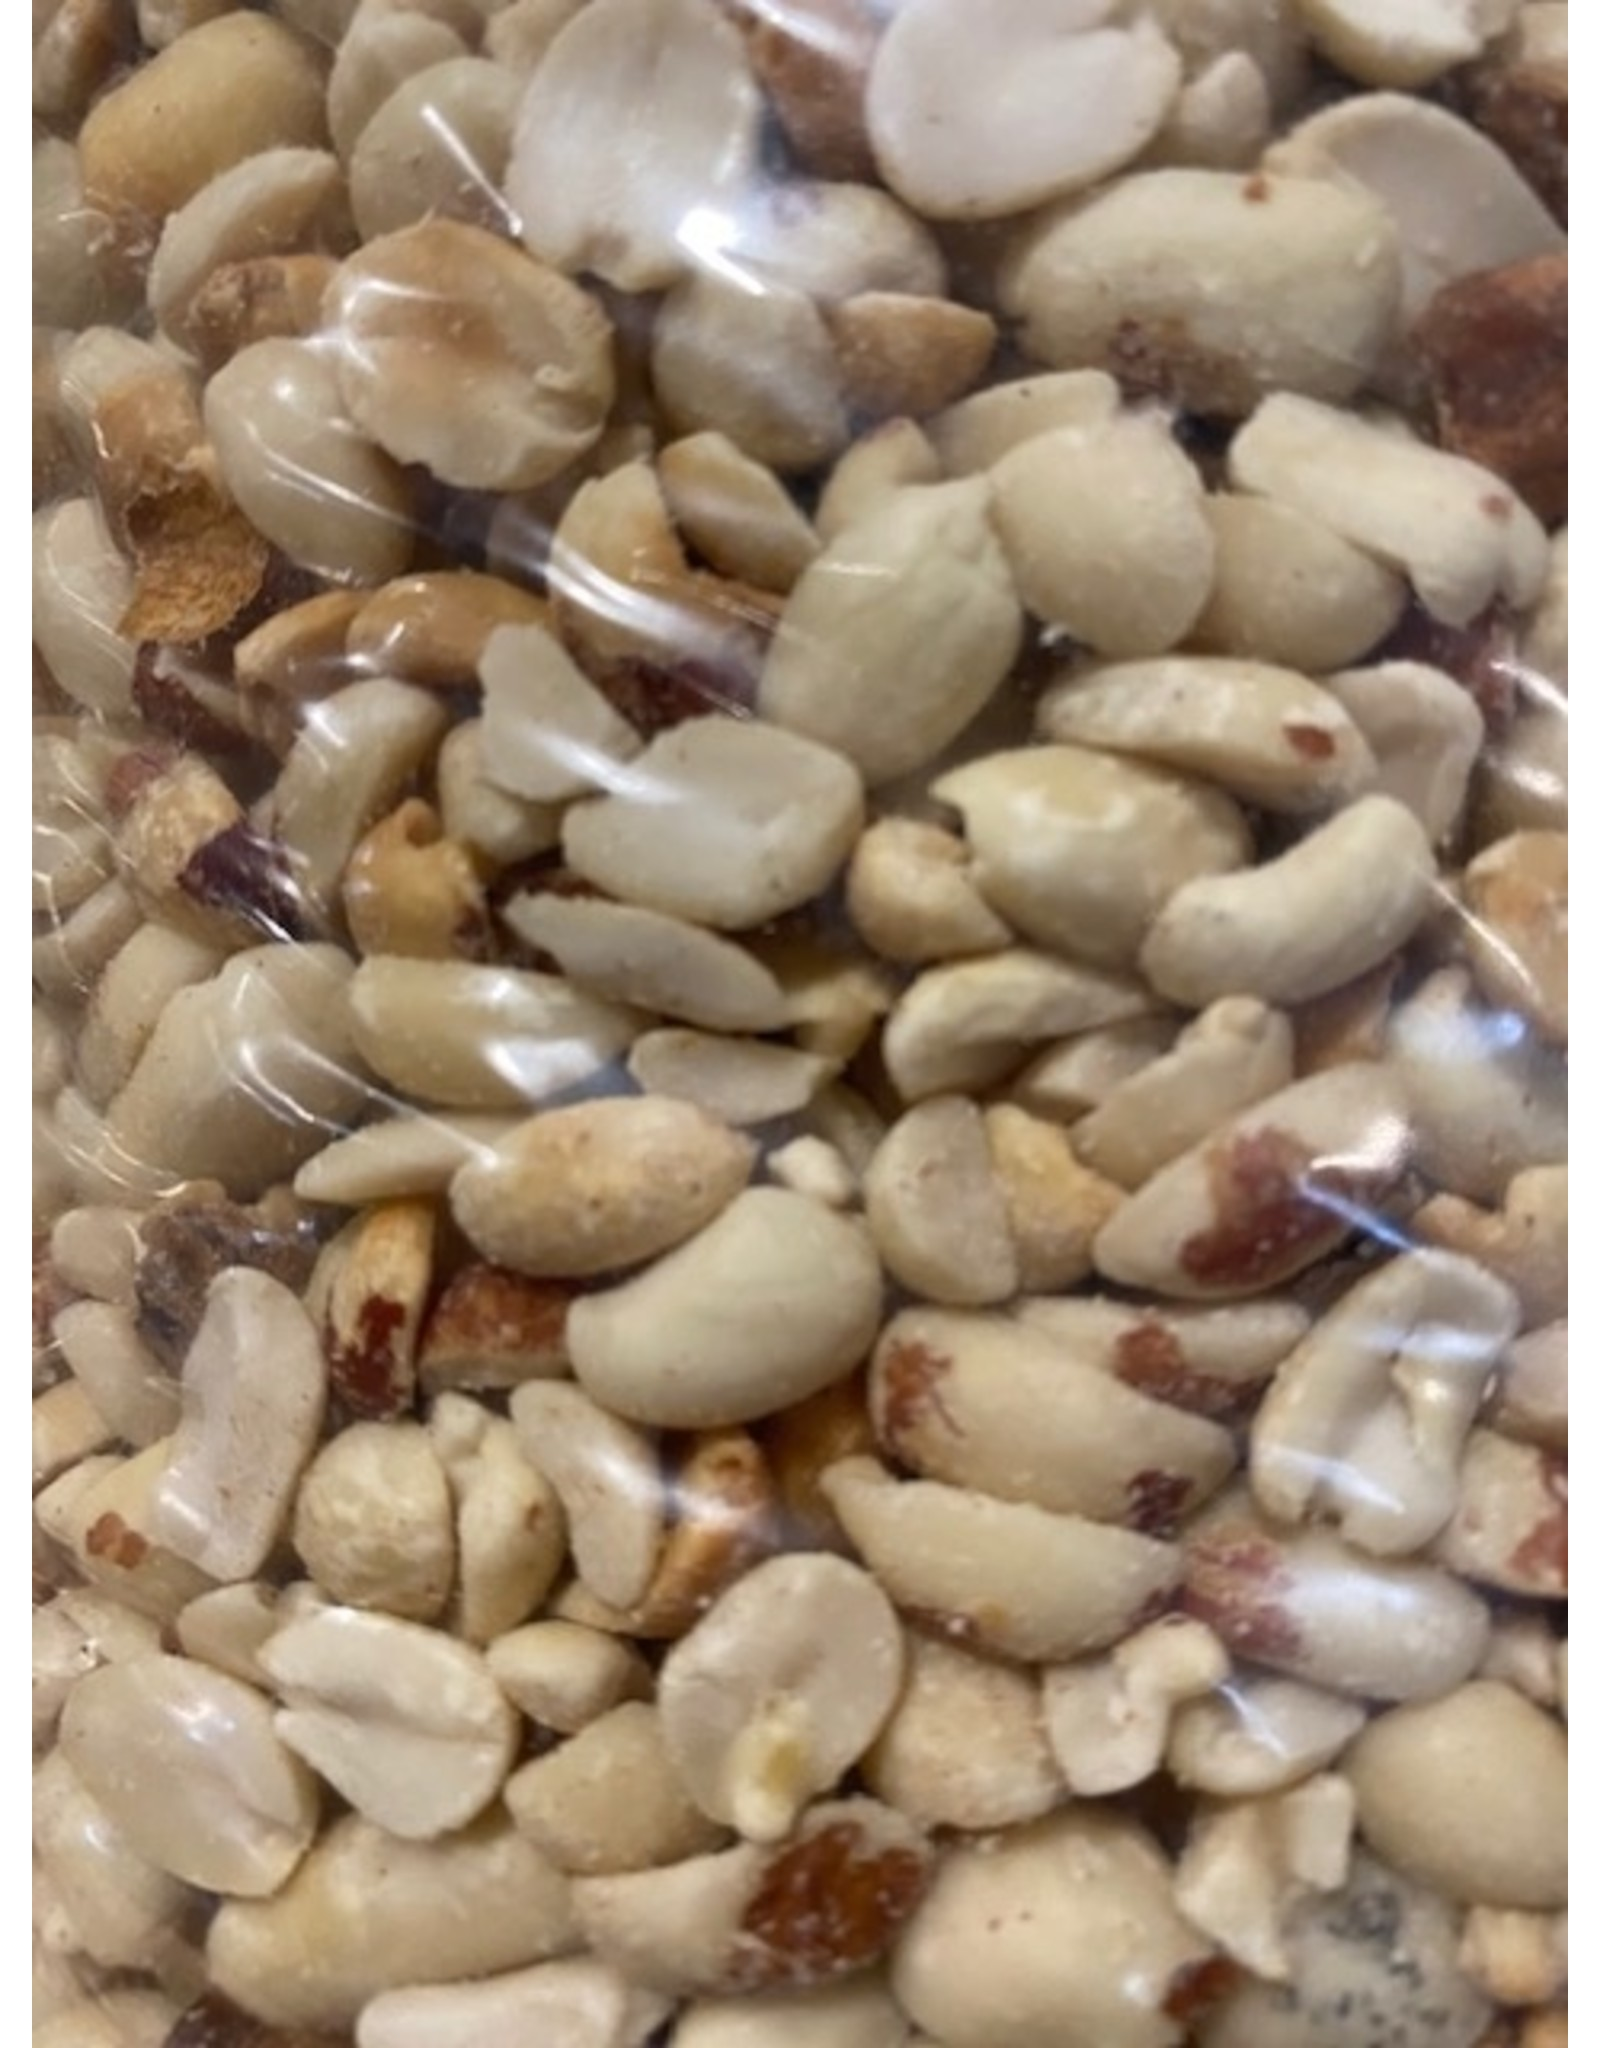 Mill Creek/Seed DLXPNUT12 Roasted Peanuts out of the shell 12lb bag